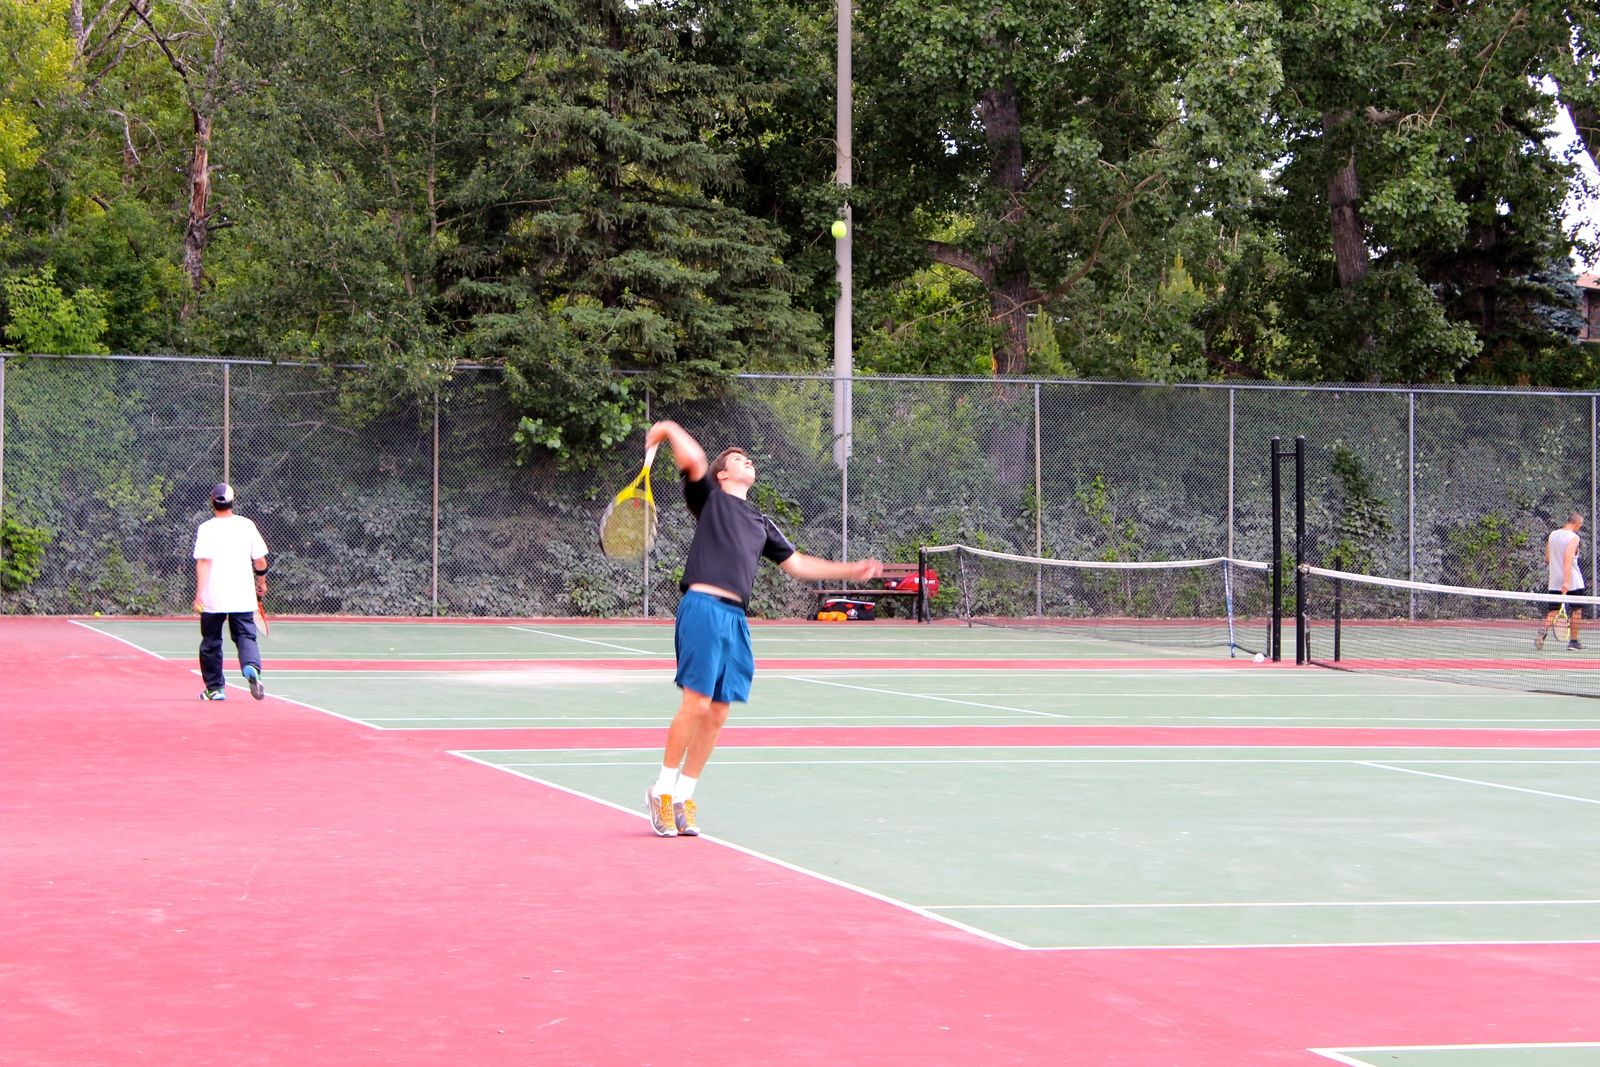 tennis-tourist-stanley-park-calgary-teri-church